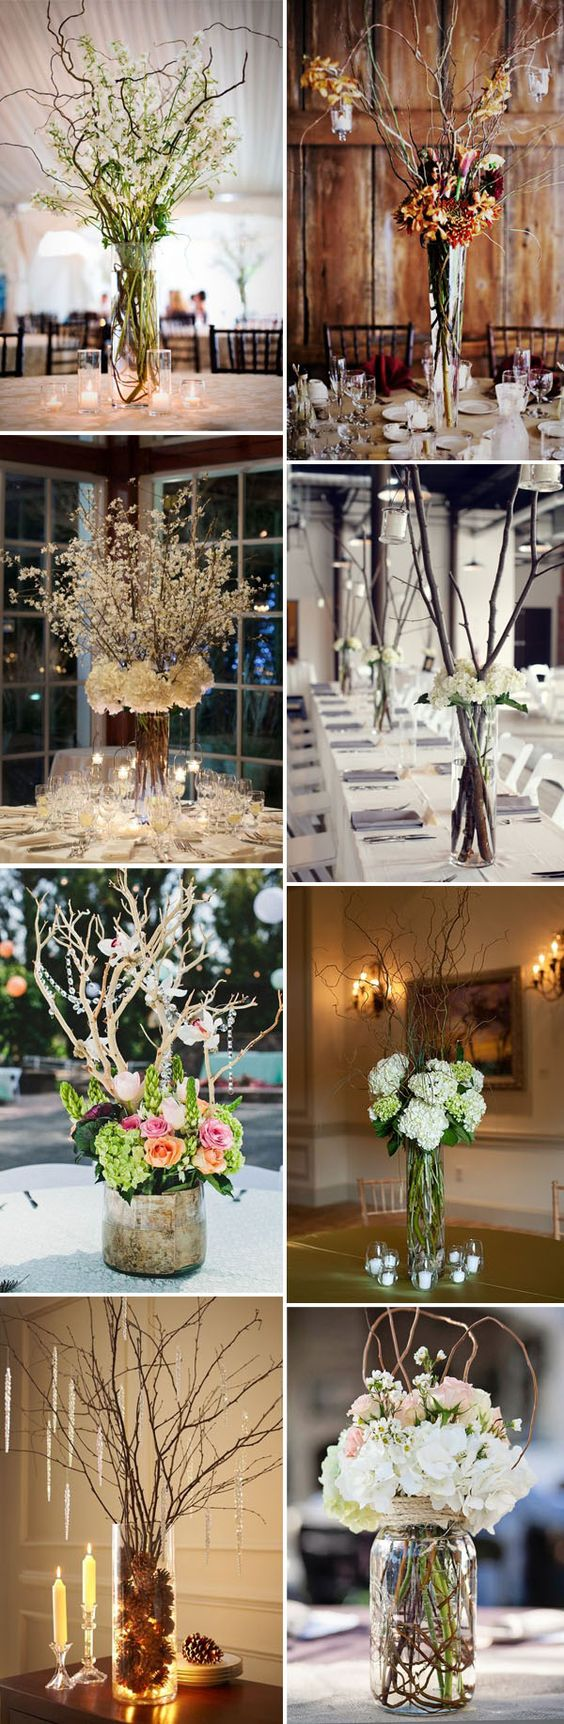 creative u budgetfriendly diy wedding decoration ideas wedding